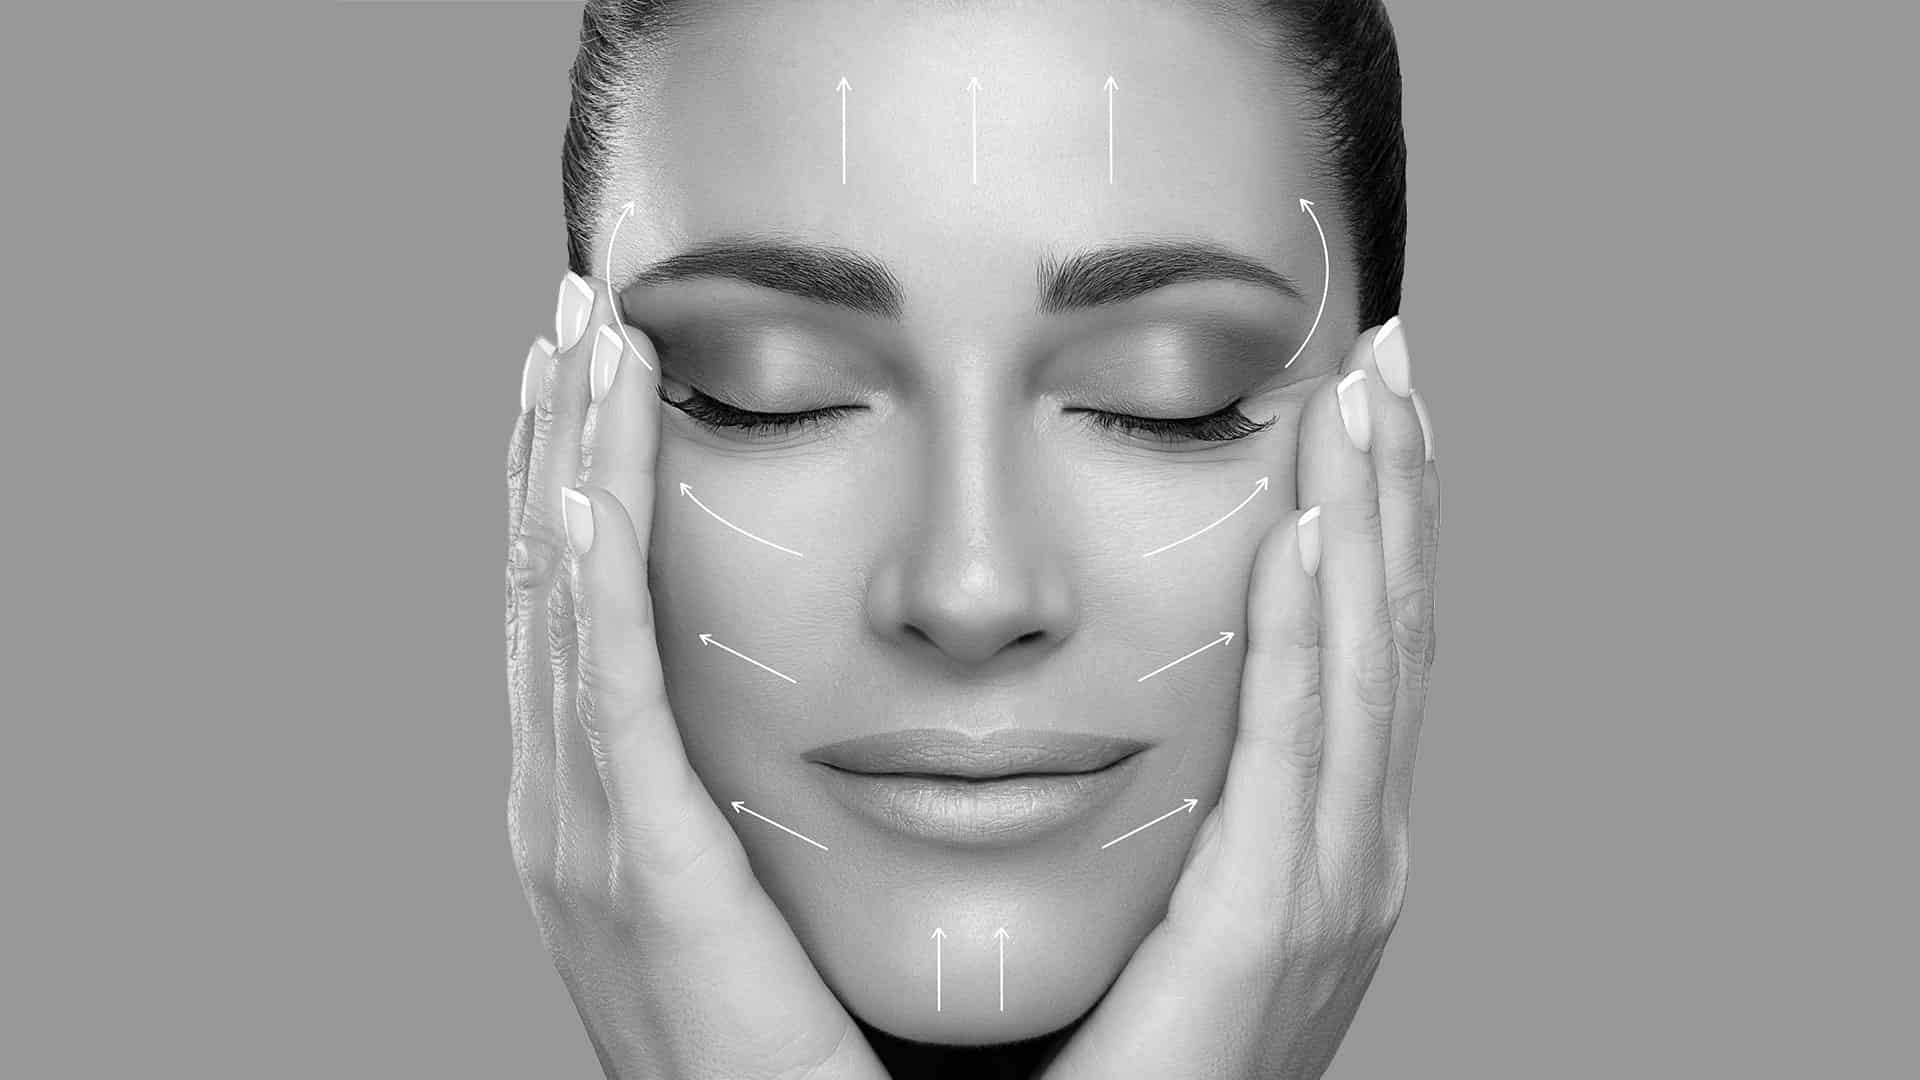 Methods and Recipes for Sensitive Skincare in Winter